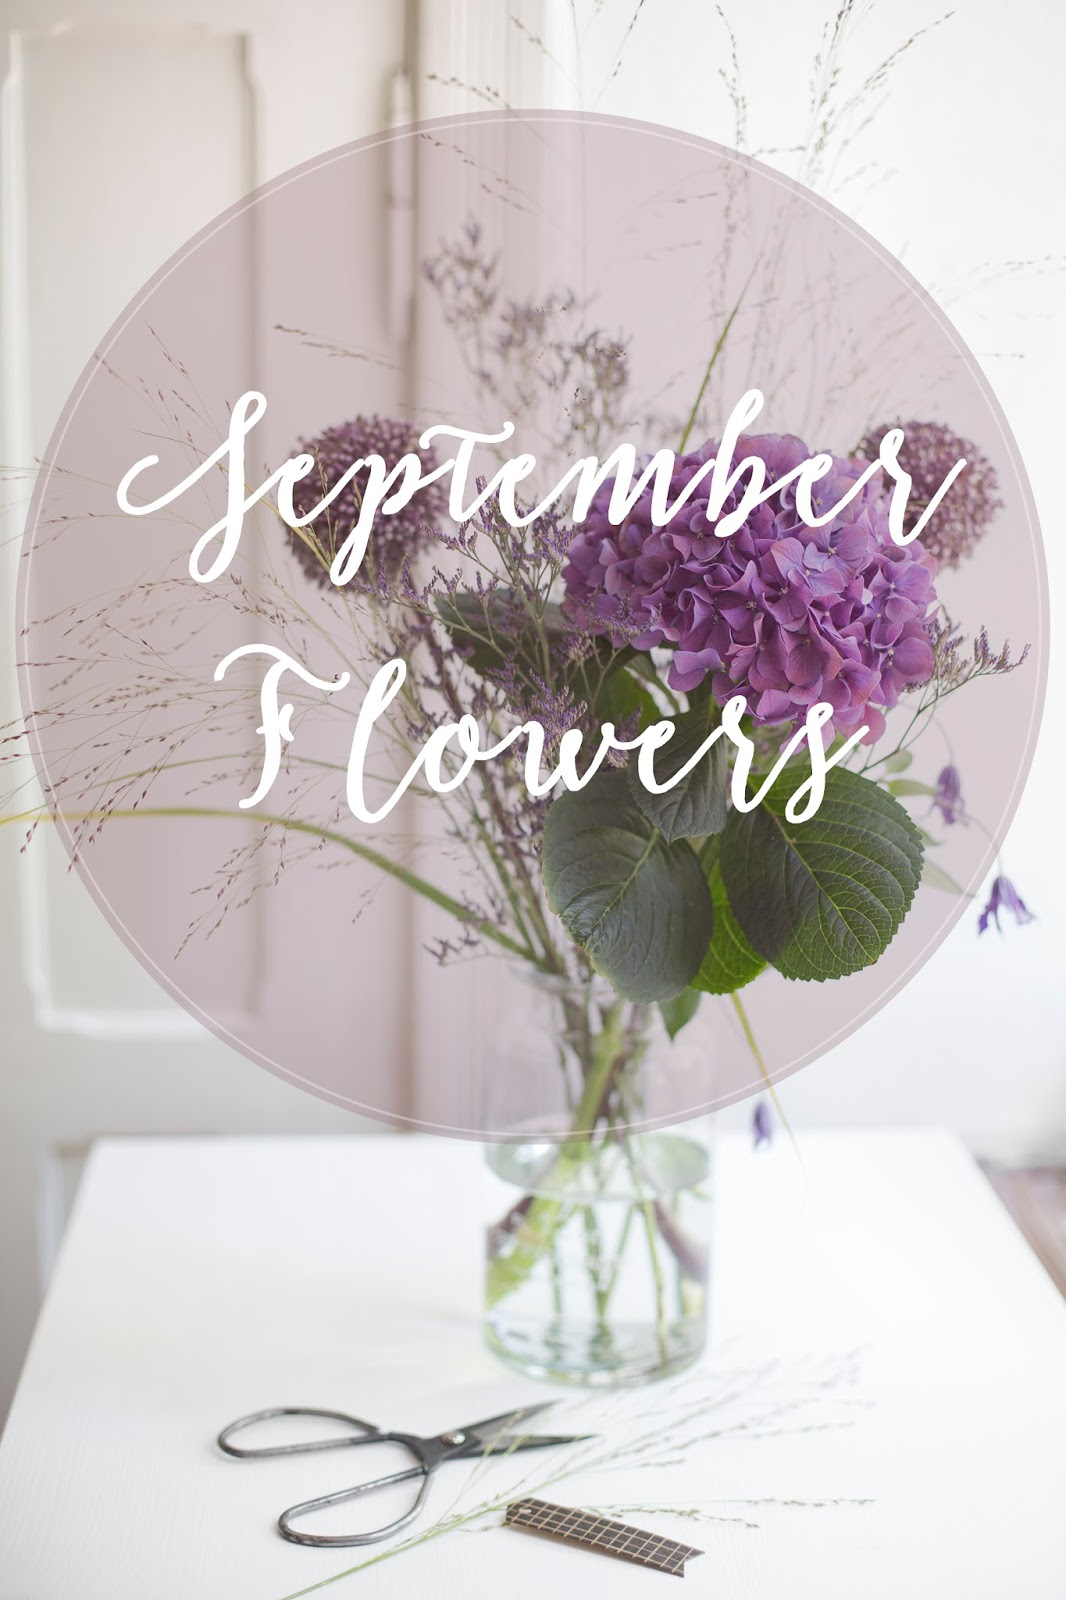 September Blumen in sattem Lila